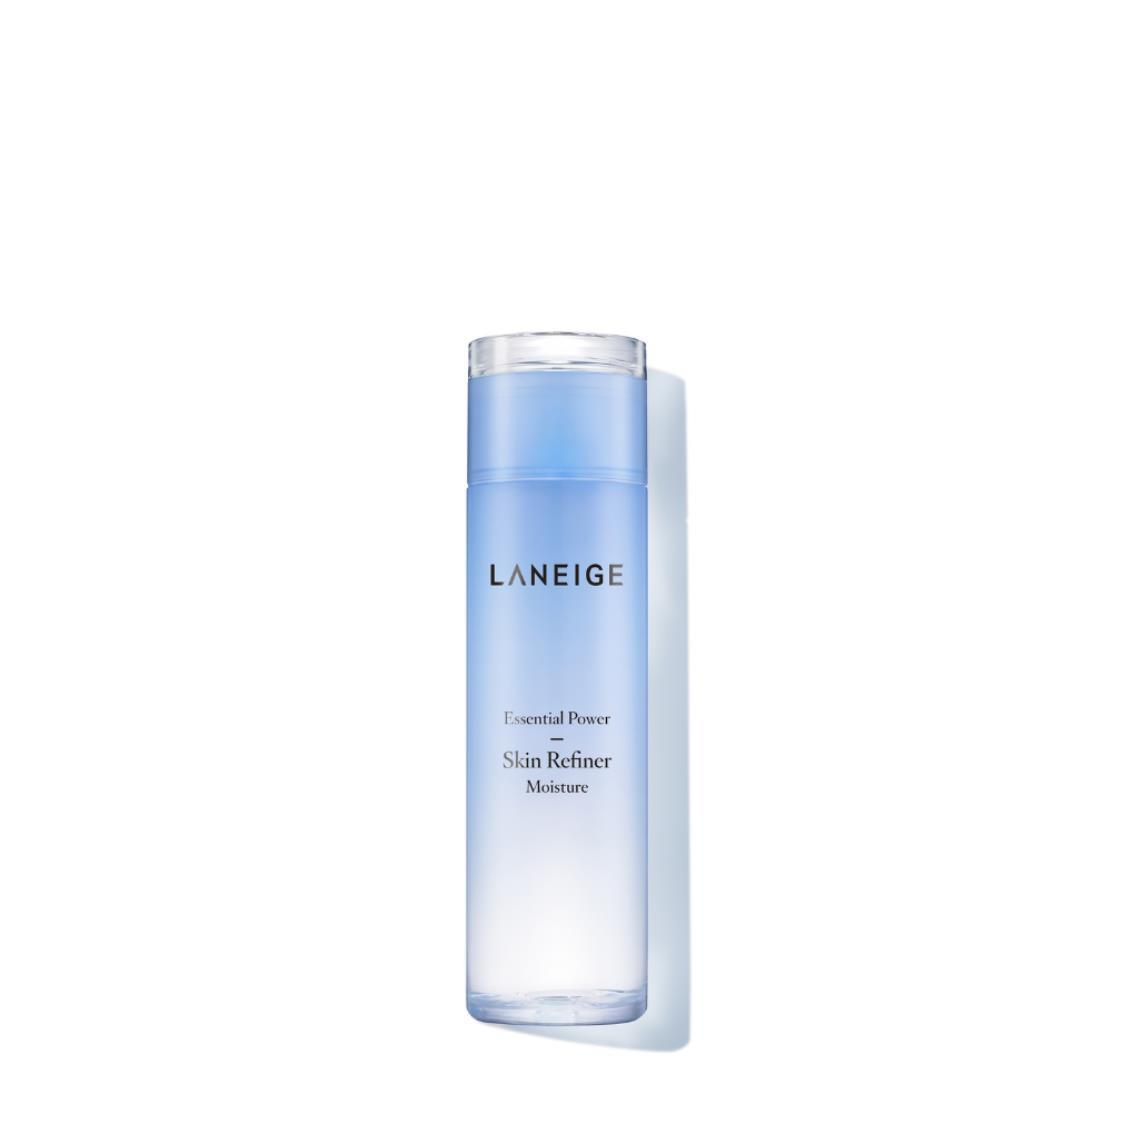 Essential Power Skin Refiner Moisture 200ml